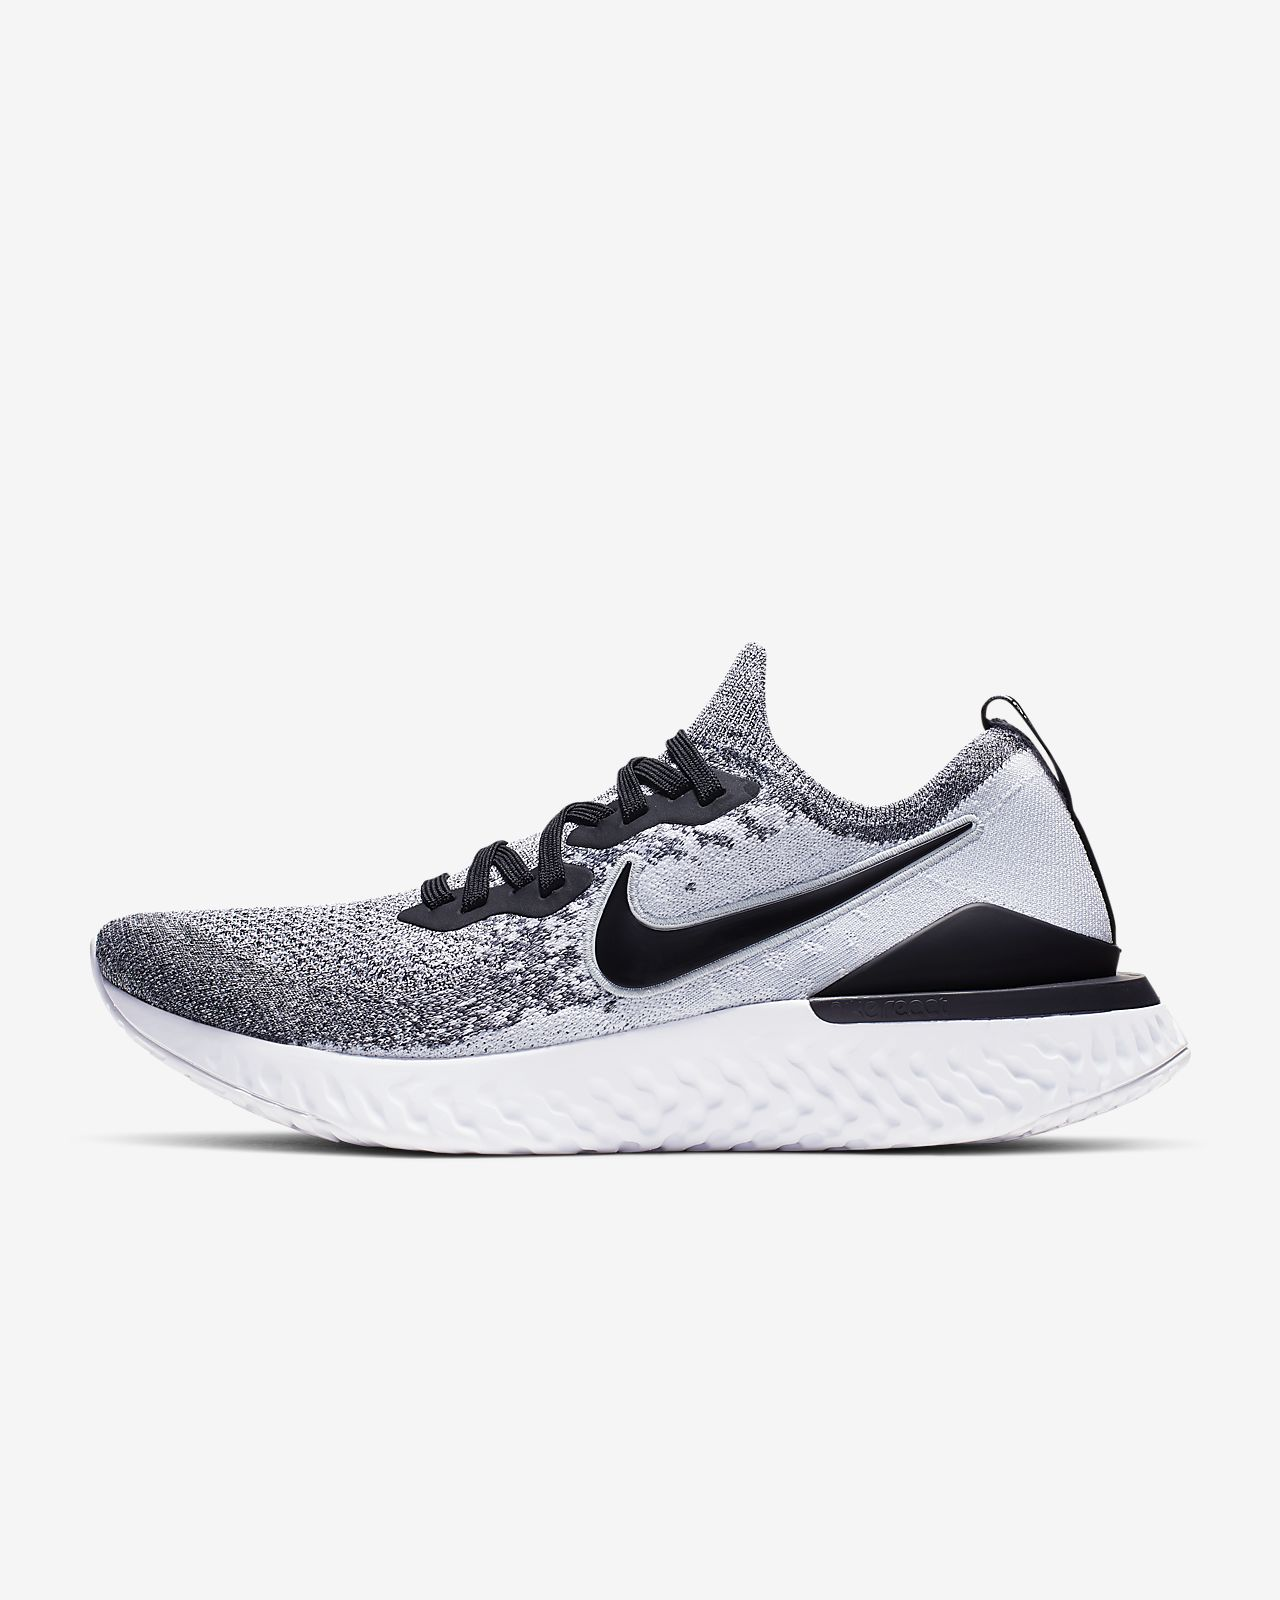 55ff567ad24e Nike Epic React Flyknit 2 Men s Running Shoe. Nike.com NL